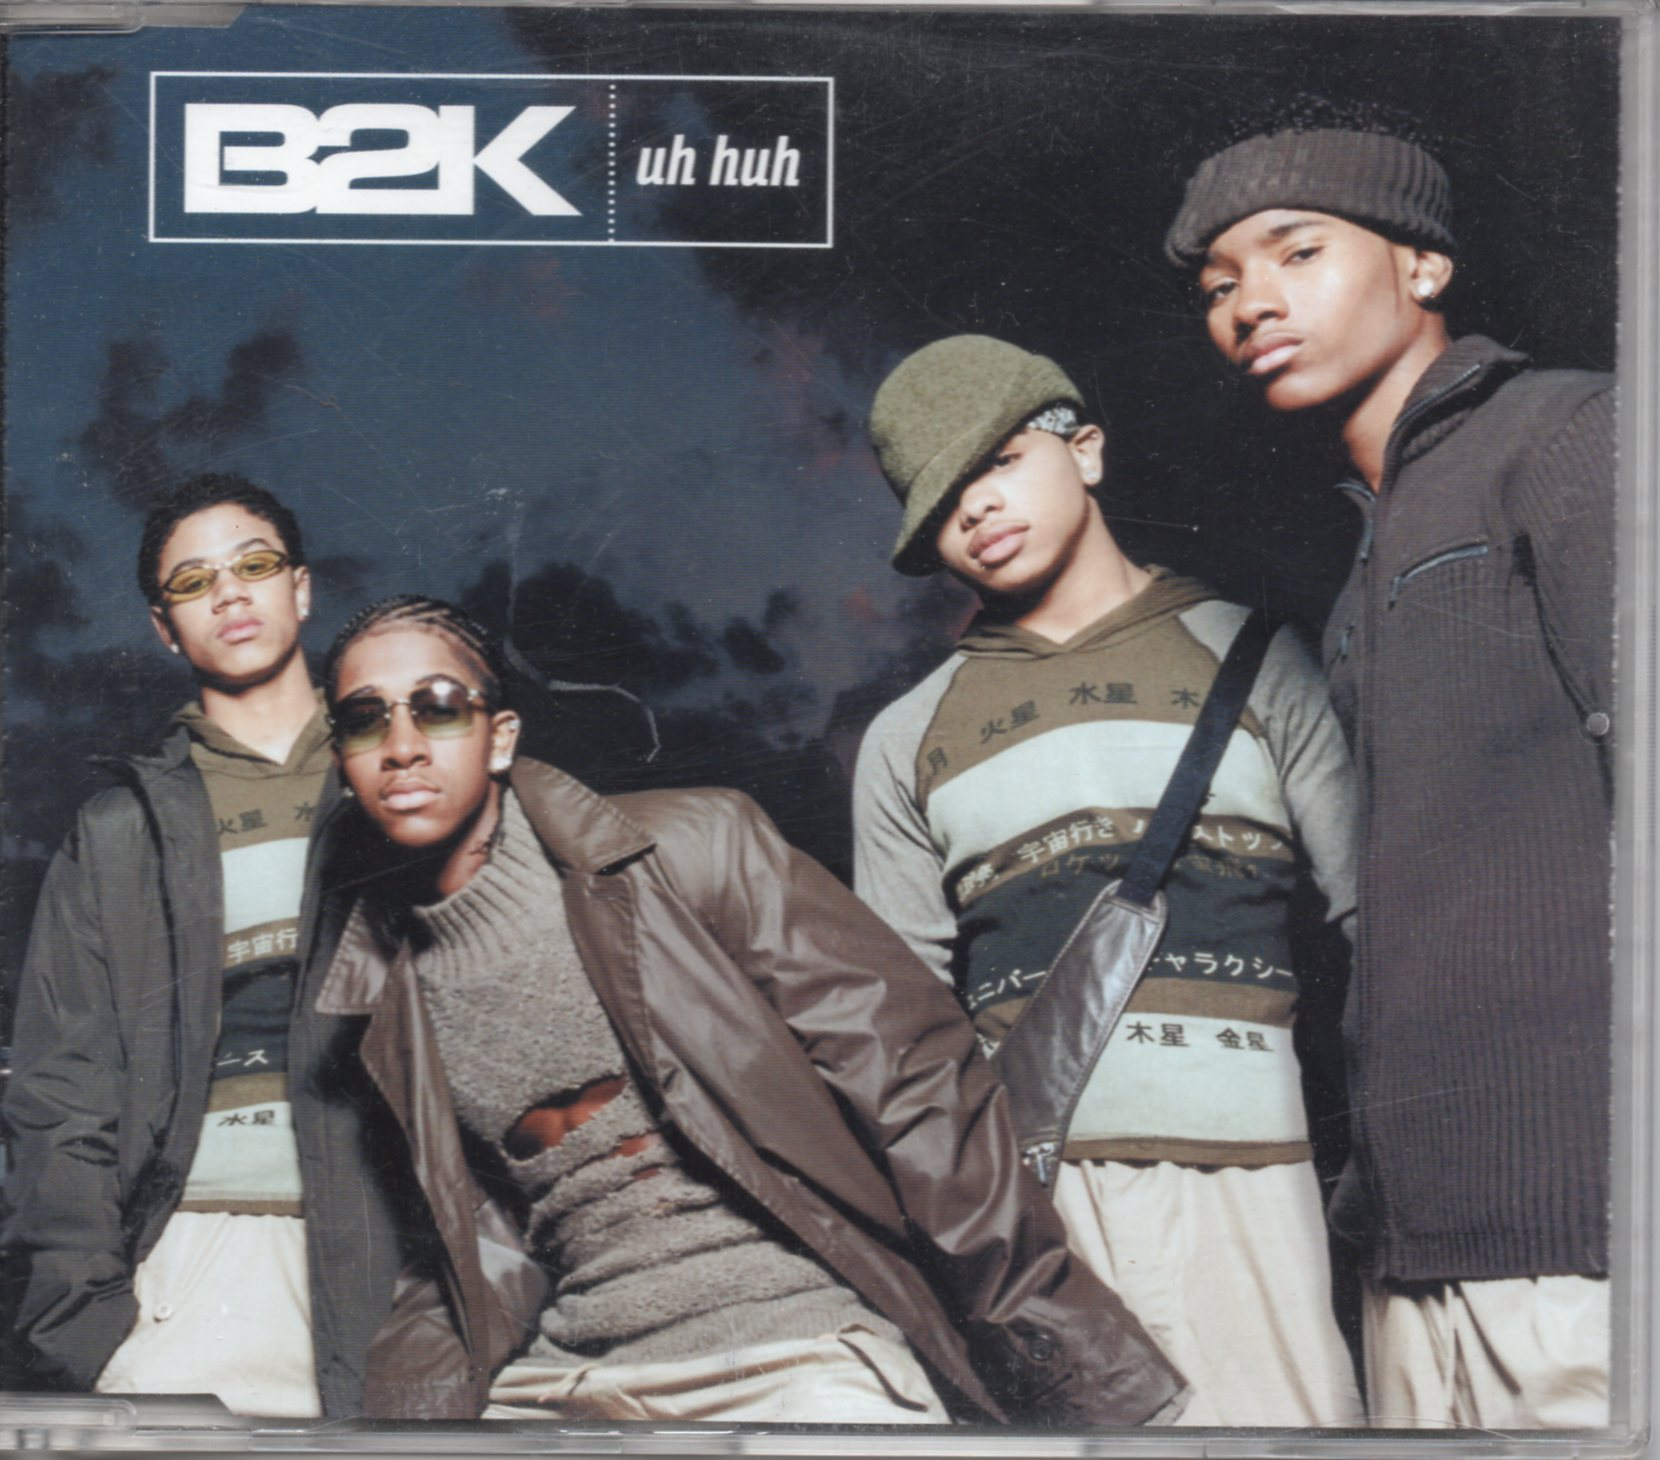 B2K - Uh Huh 1-track Jewel Case - CD Maxi